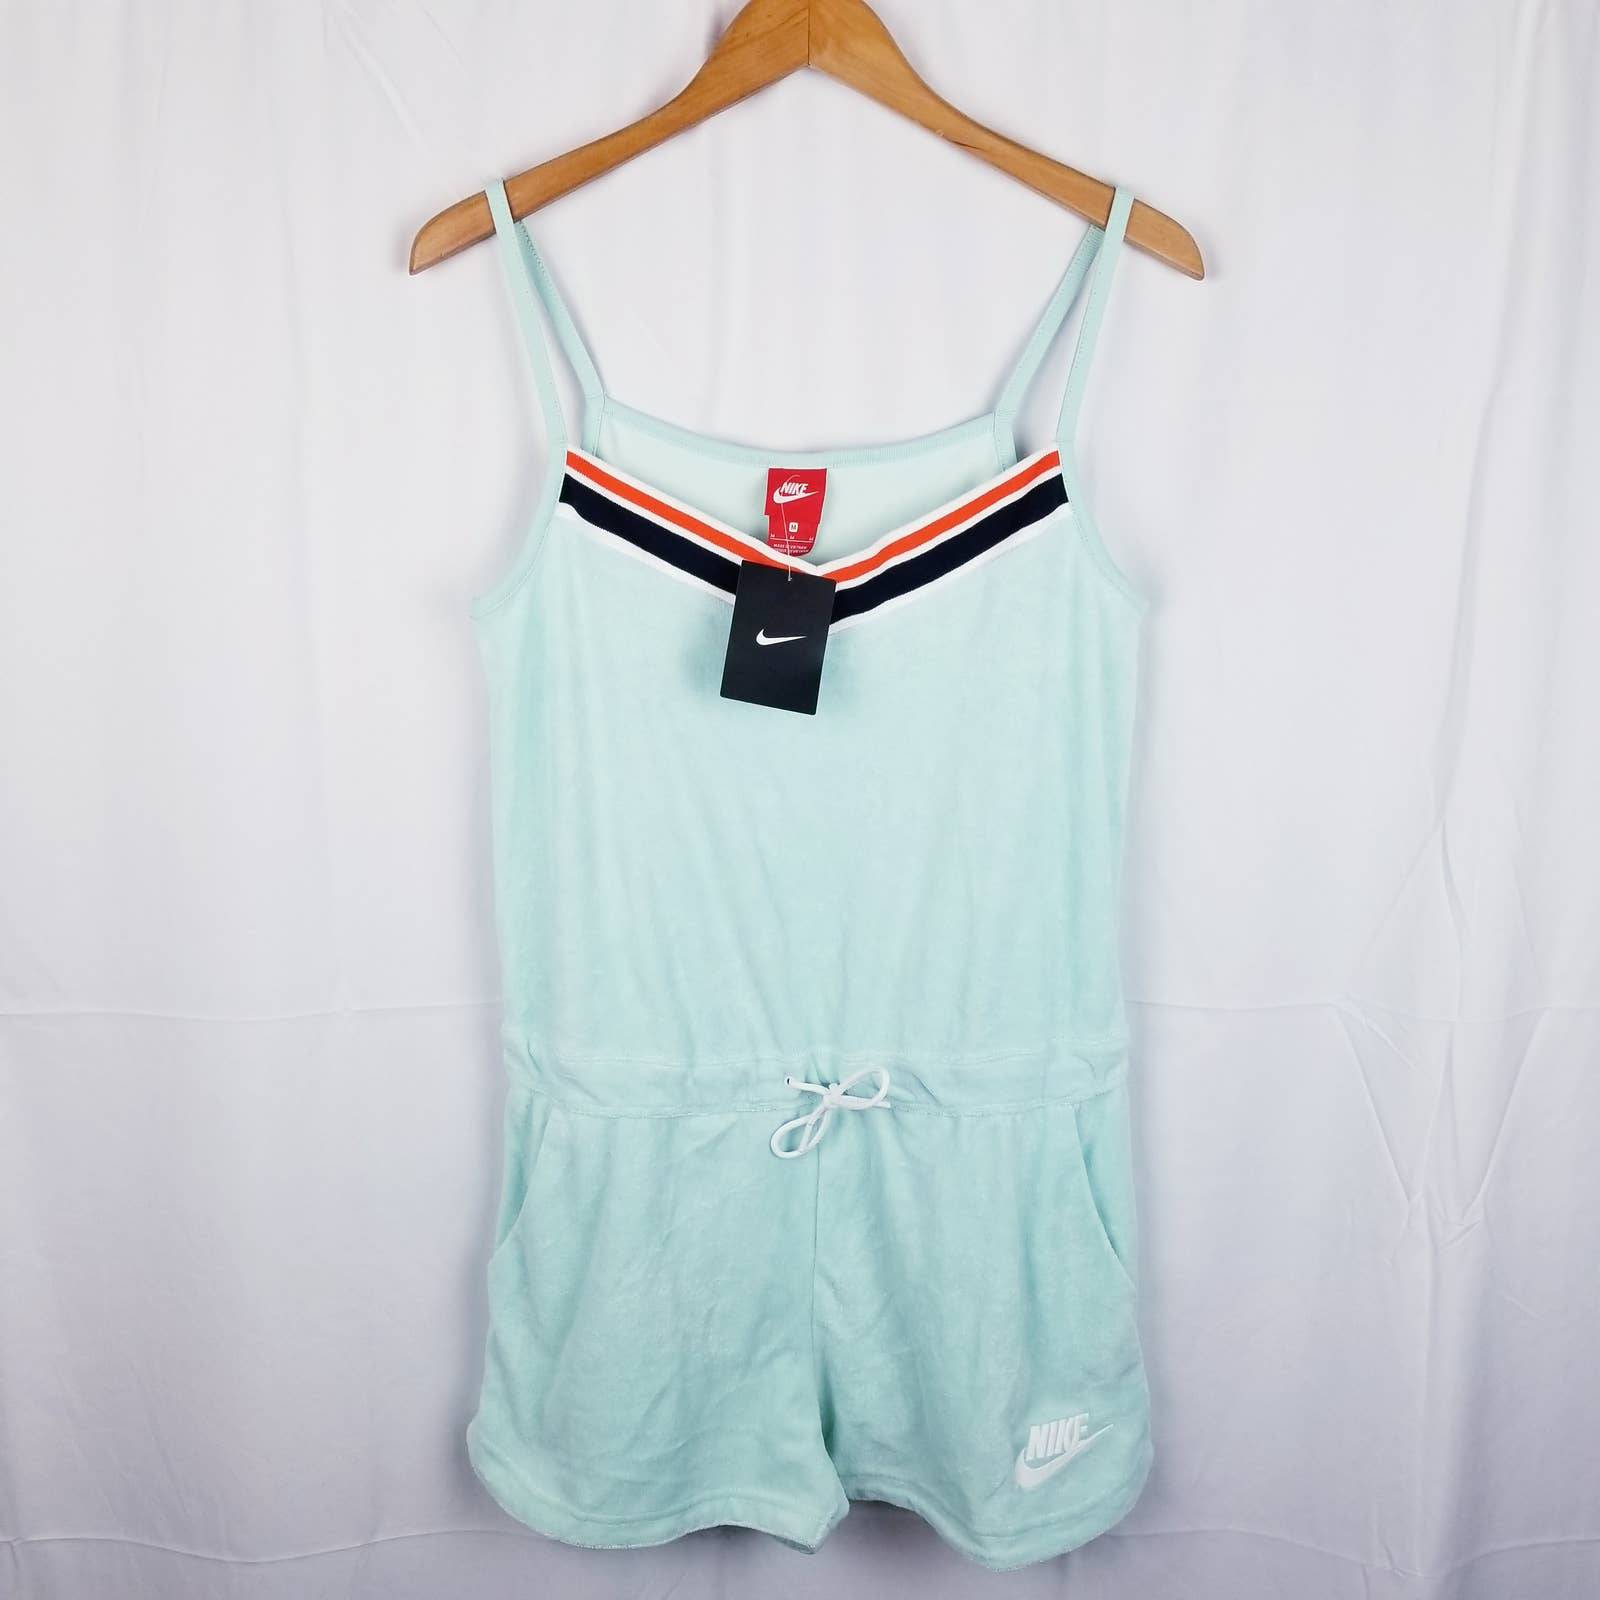 Nike NSW Terry Cloth Romper Jumpsuit M